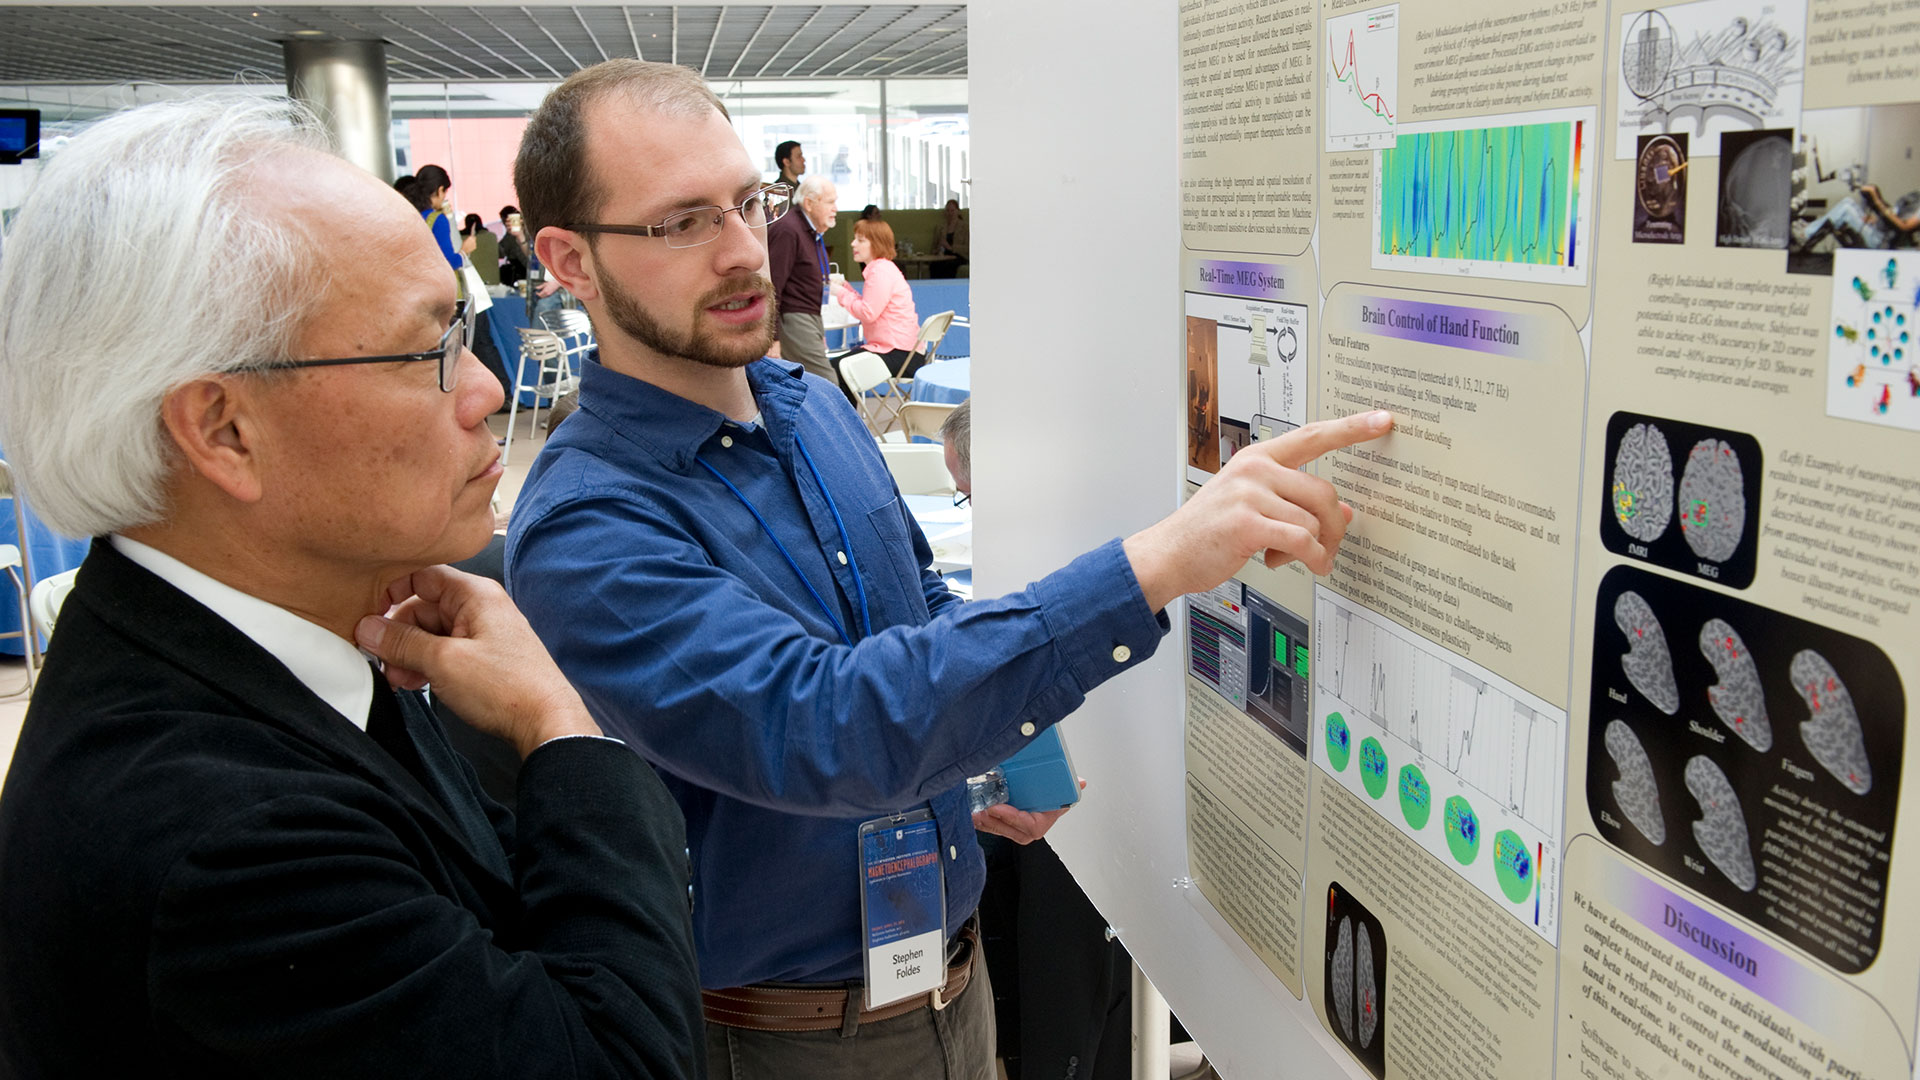 Researcher presents data at poster presentation